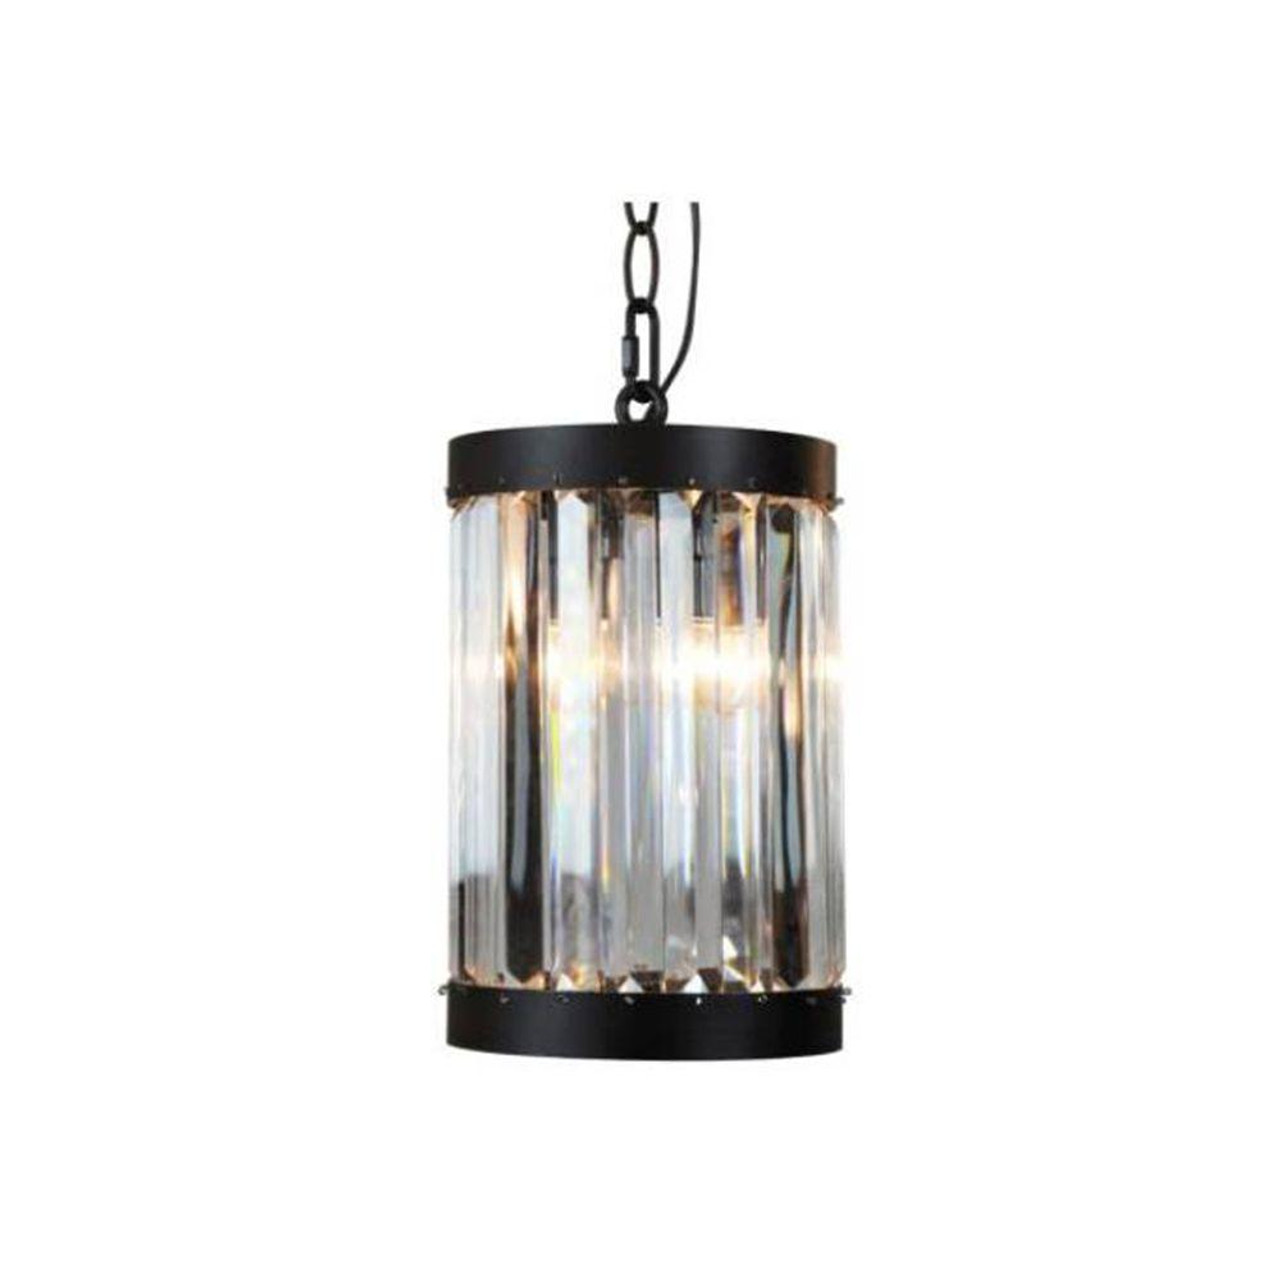 1-Light Oil-Rubbed Bronze Indoor Mini Pendant with Glass Shade